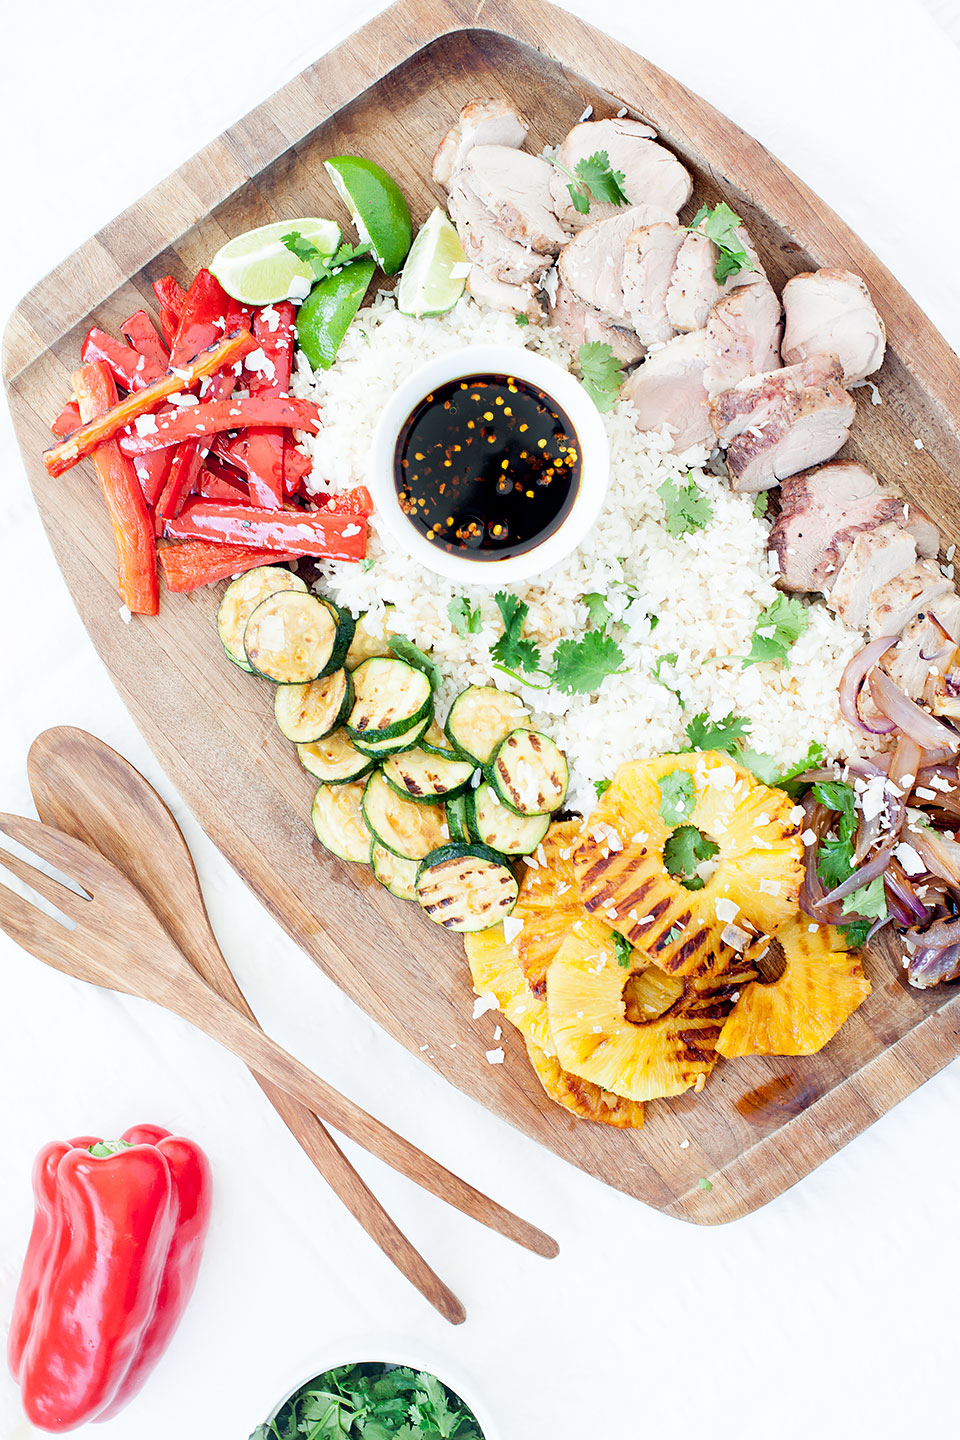 GRILLED HAWAIIAN PORK BOWLS with COCONUT STICKY RICE | Grilled veggies, pork tenderloin, and pineapple with a honey-soy sauce. | Gluten-free and paleo friendly. | LOVELEAF CO. #memorialday #bowl #pork #pineapple #grilling #grillingrecipe #porkrecipe #porktenderloinrecipe